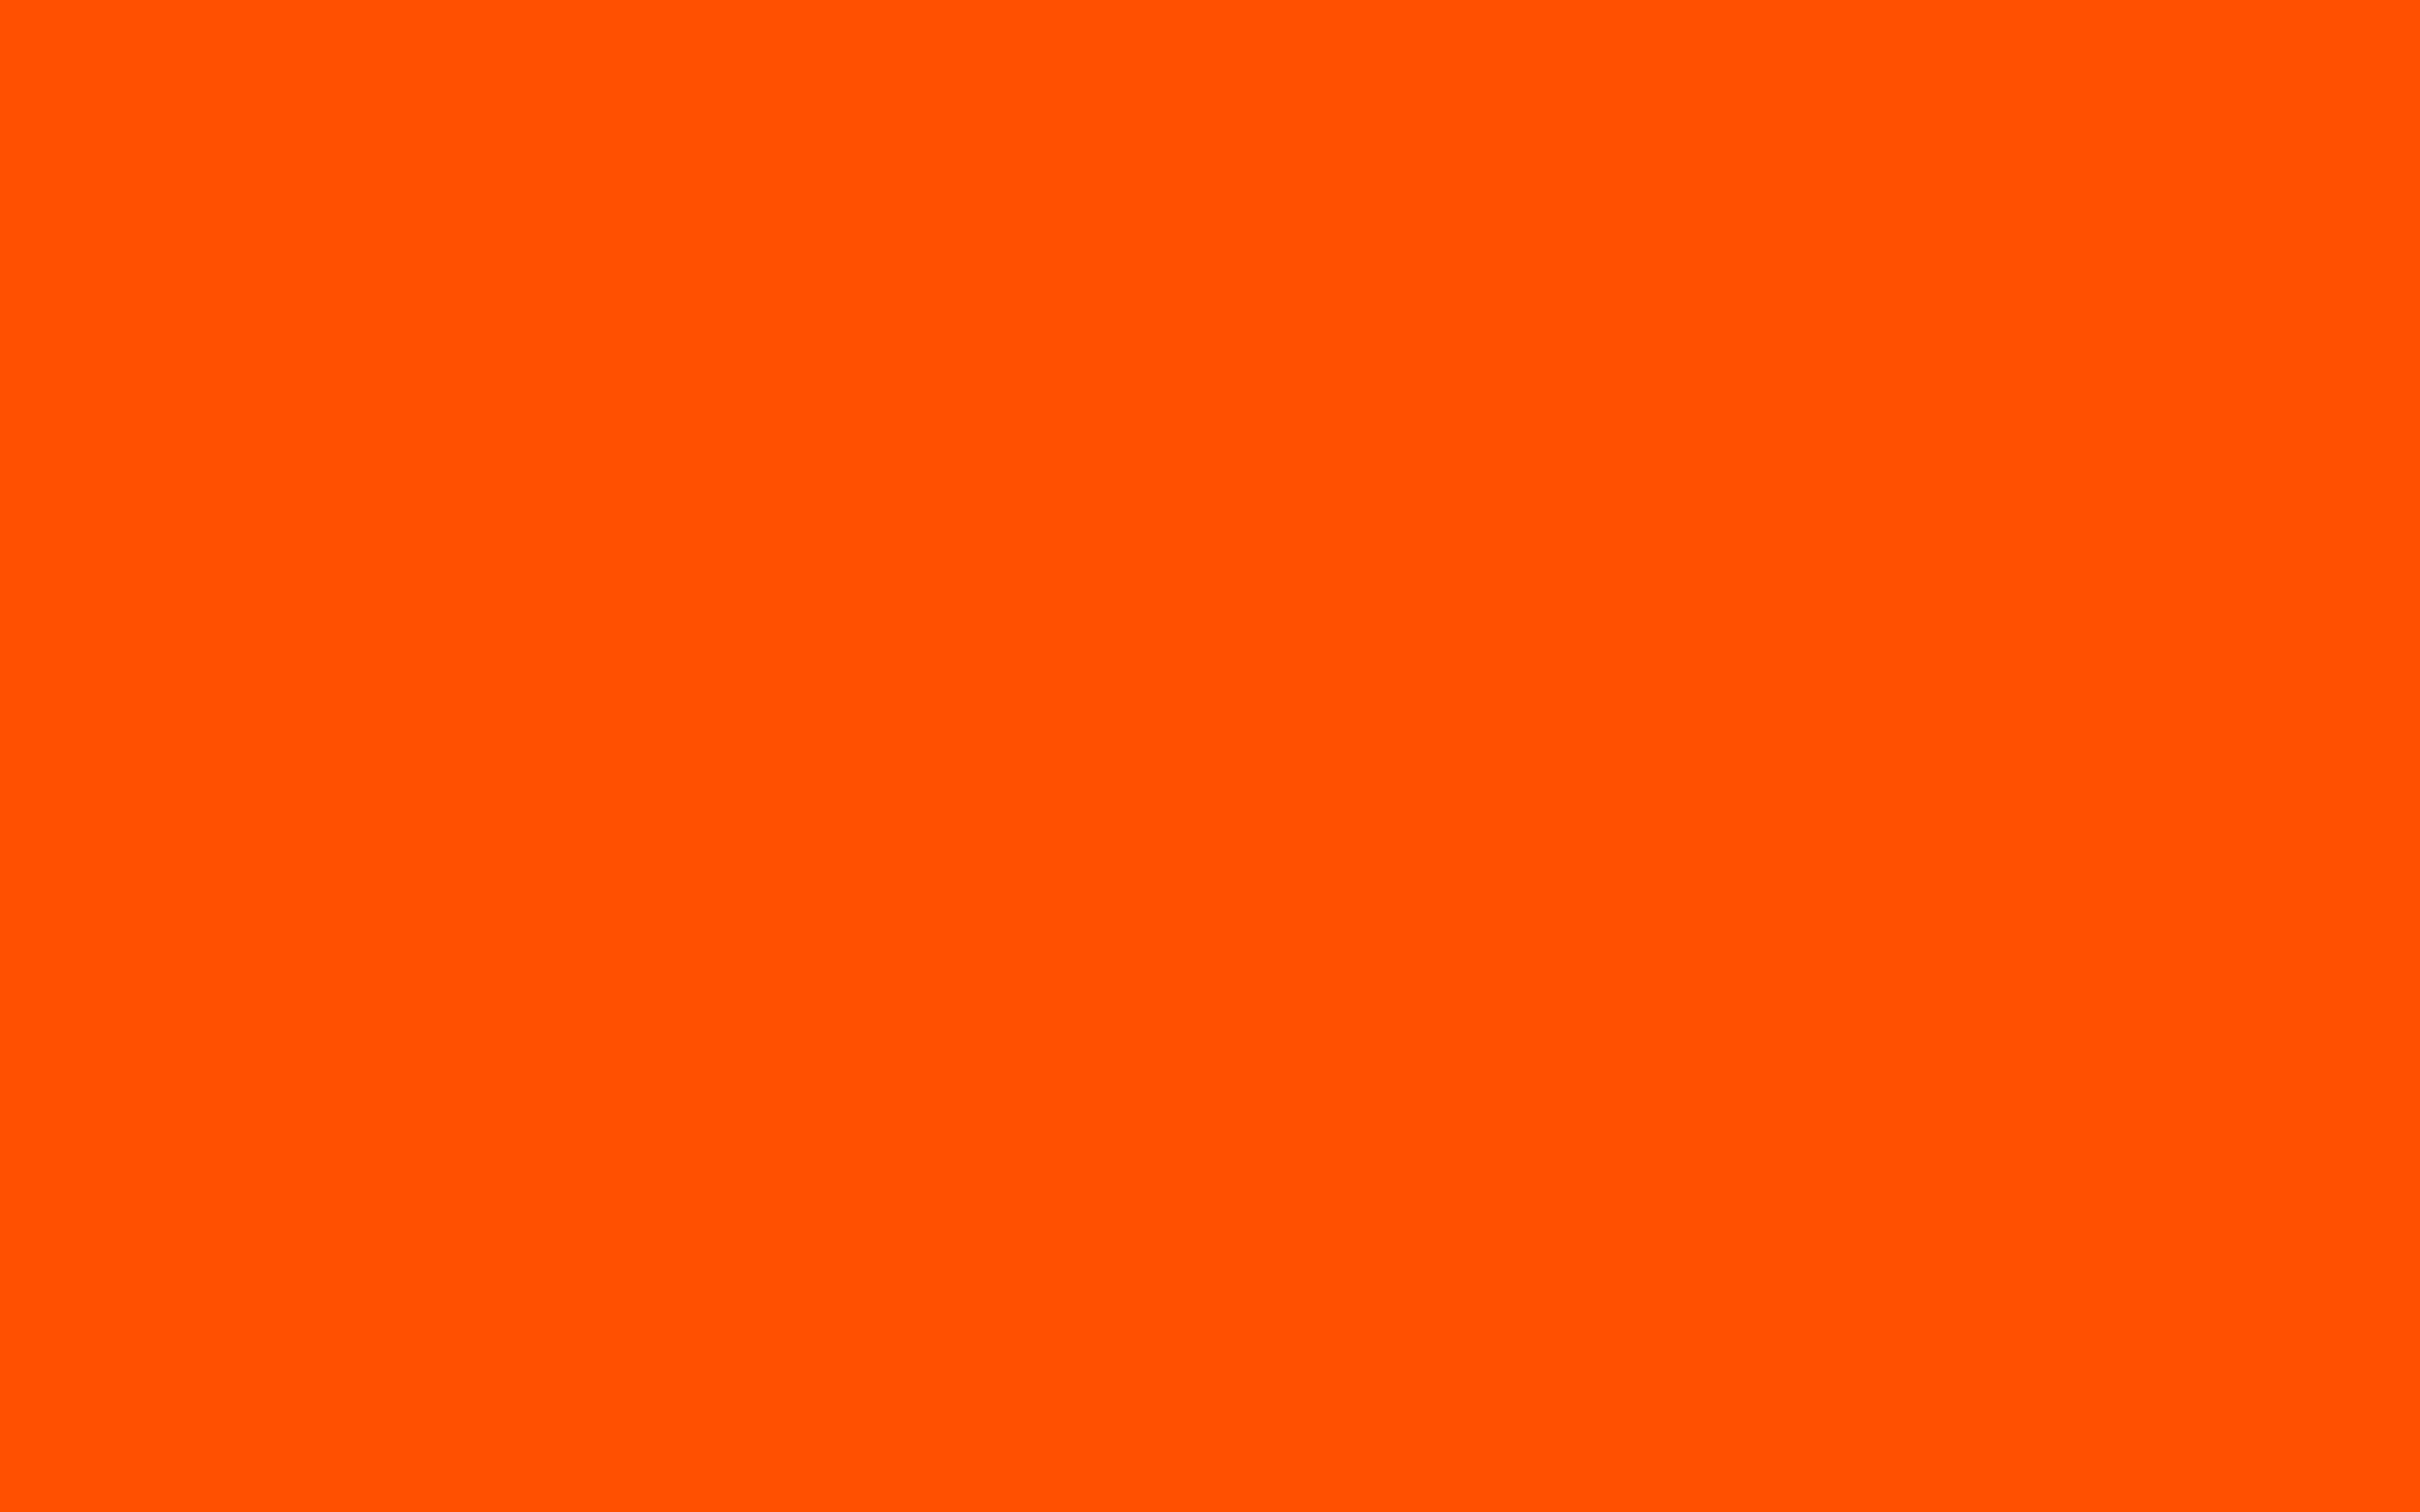 2880x1800 International Orange Aerospace Solid Color Background